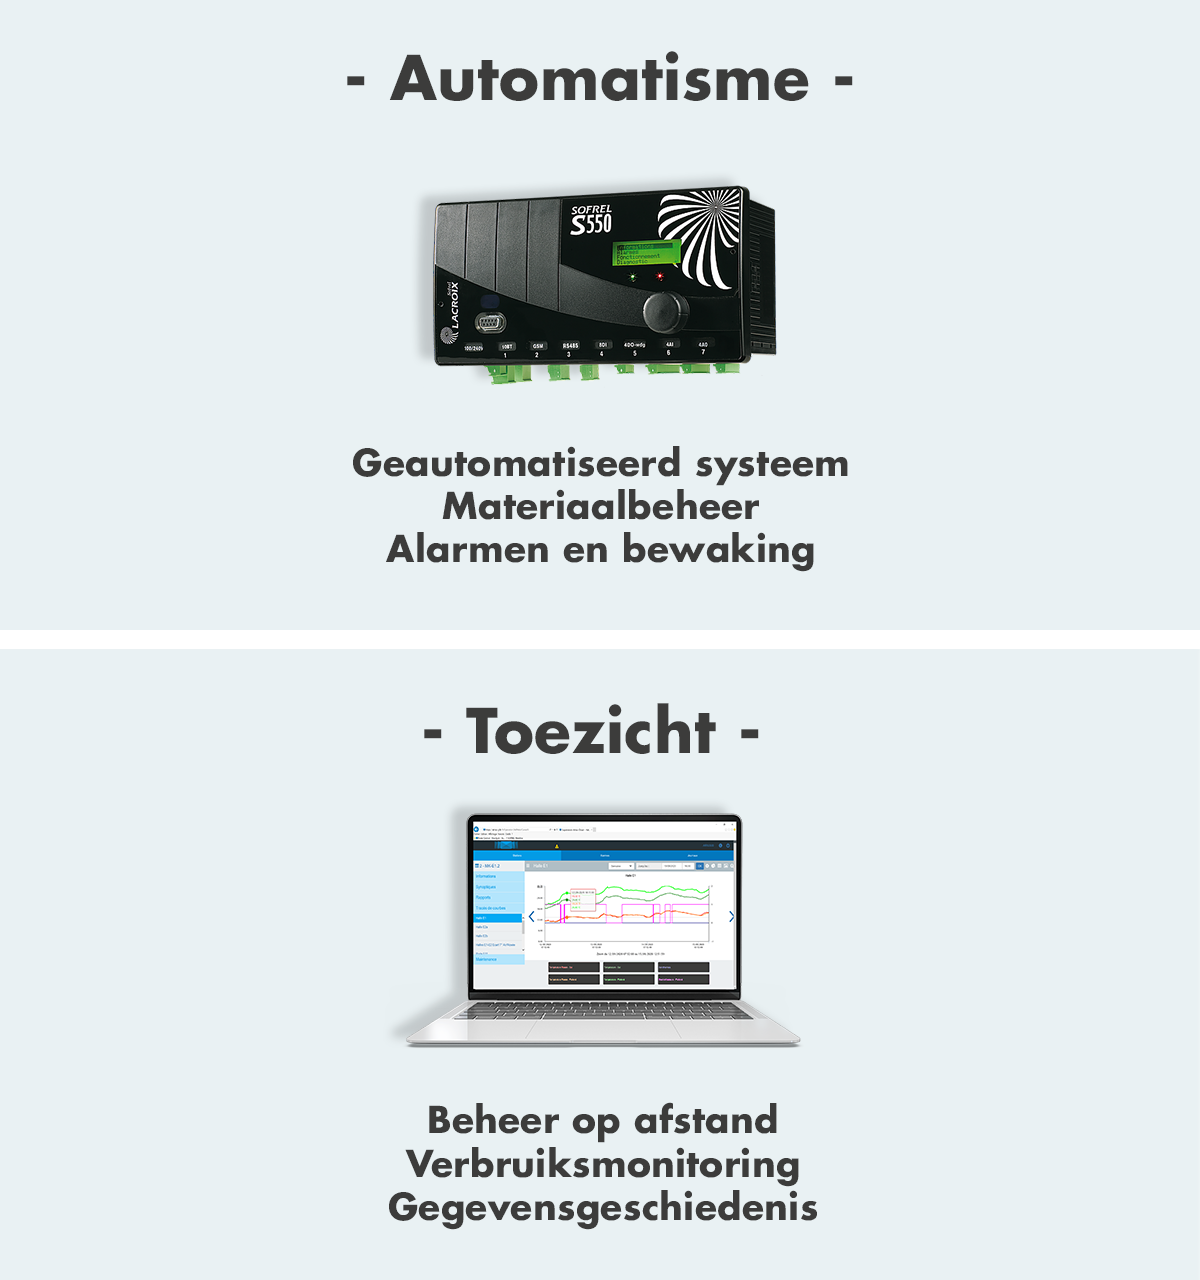 https://www.airius.solutions/wp-content/uploads/NL_automatisme-supervision_mobile.png